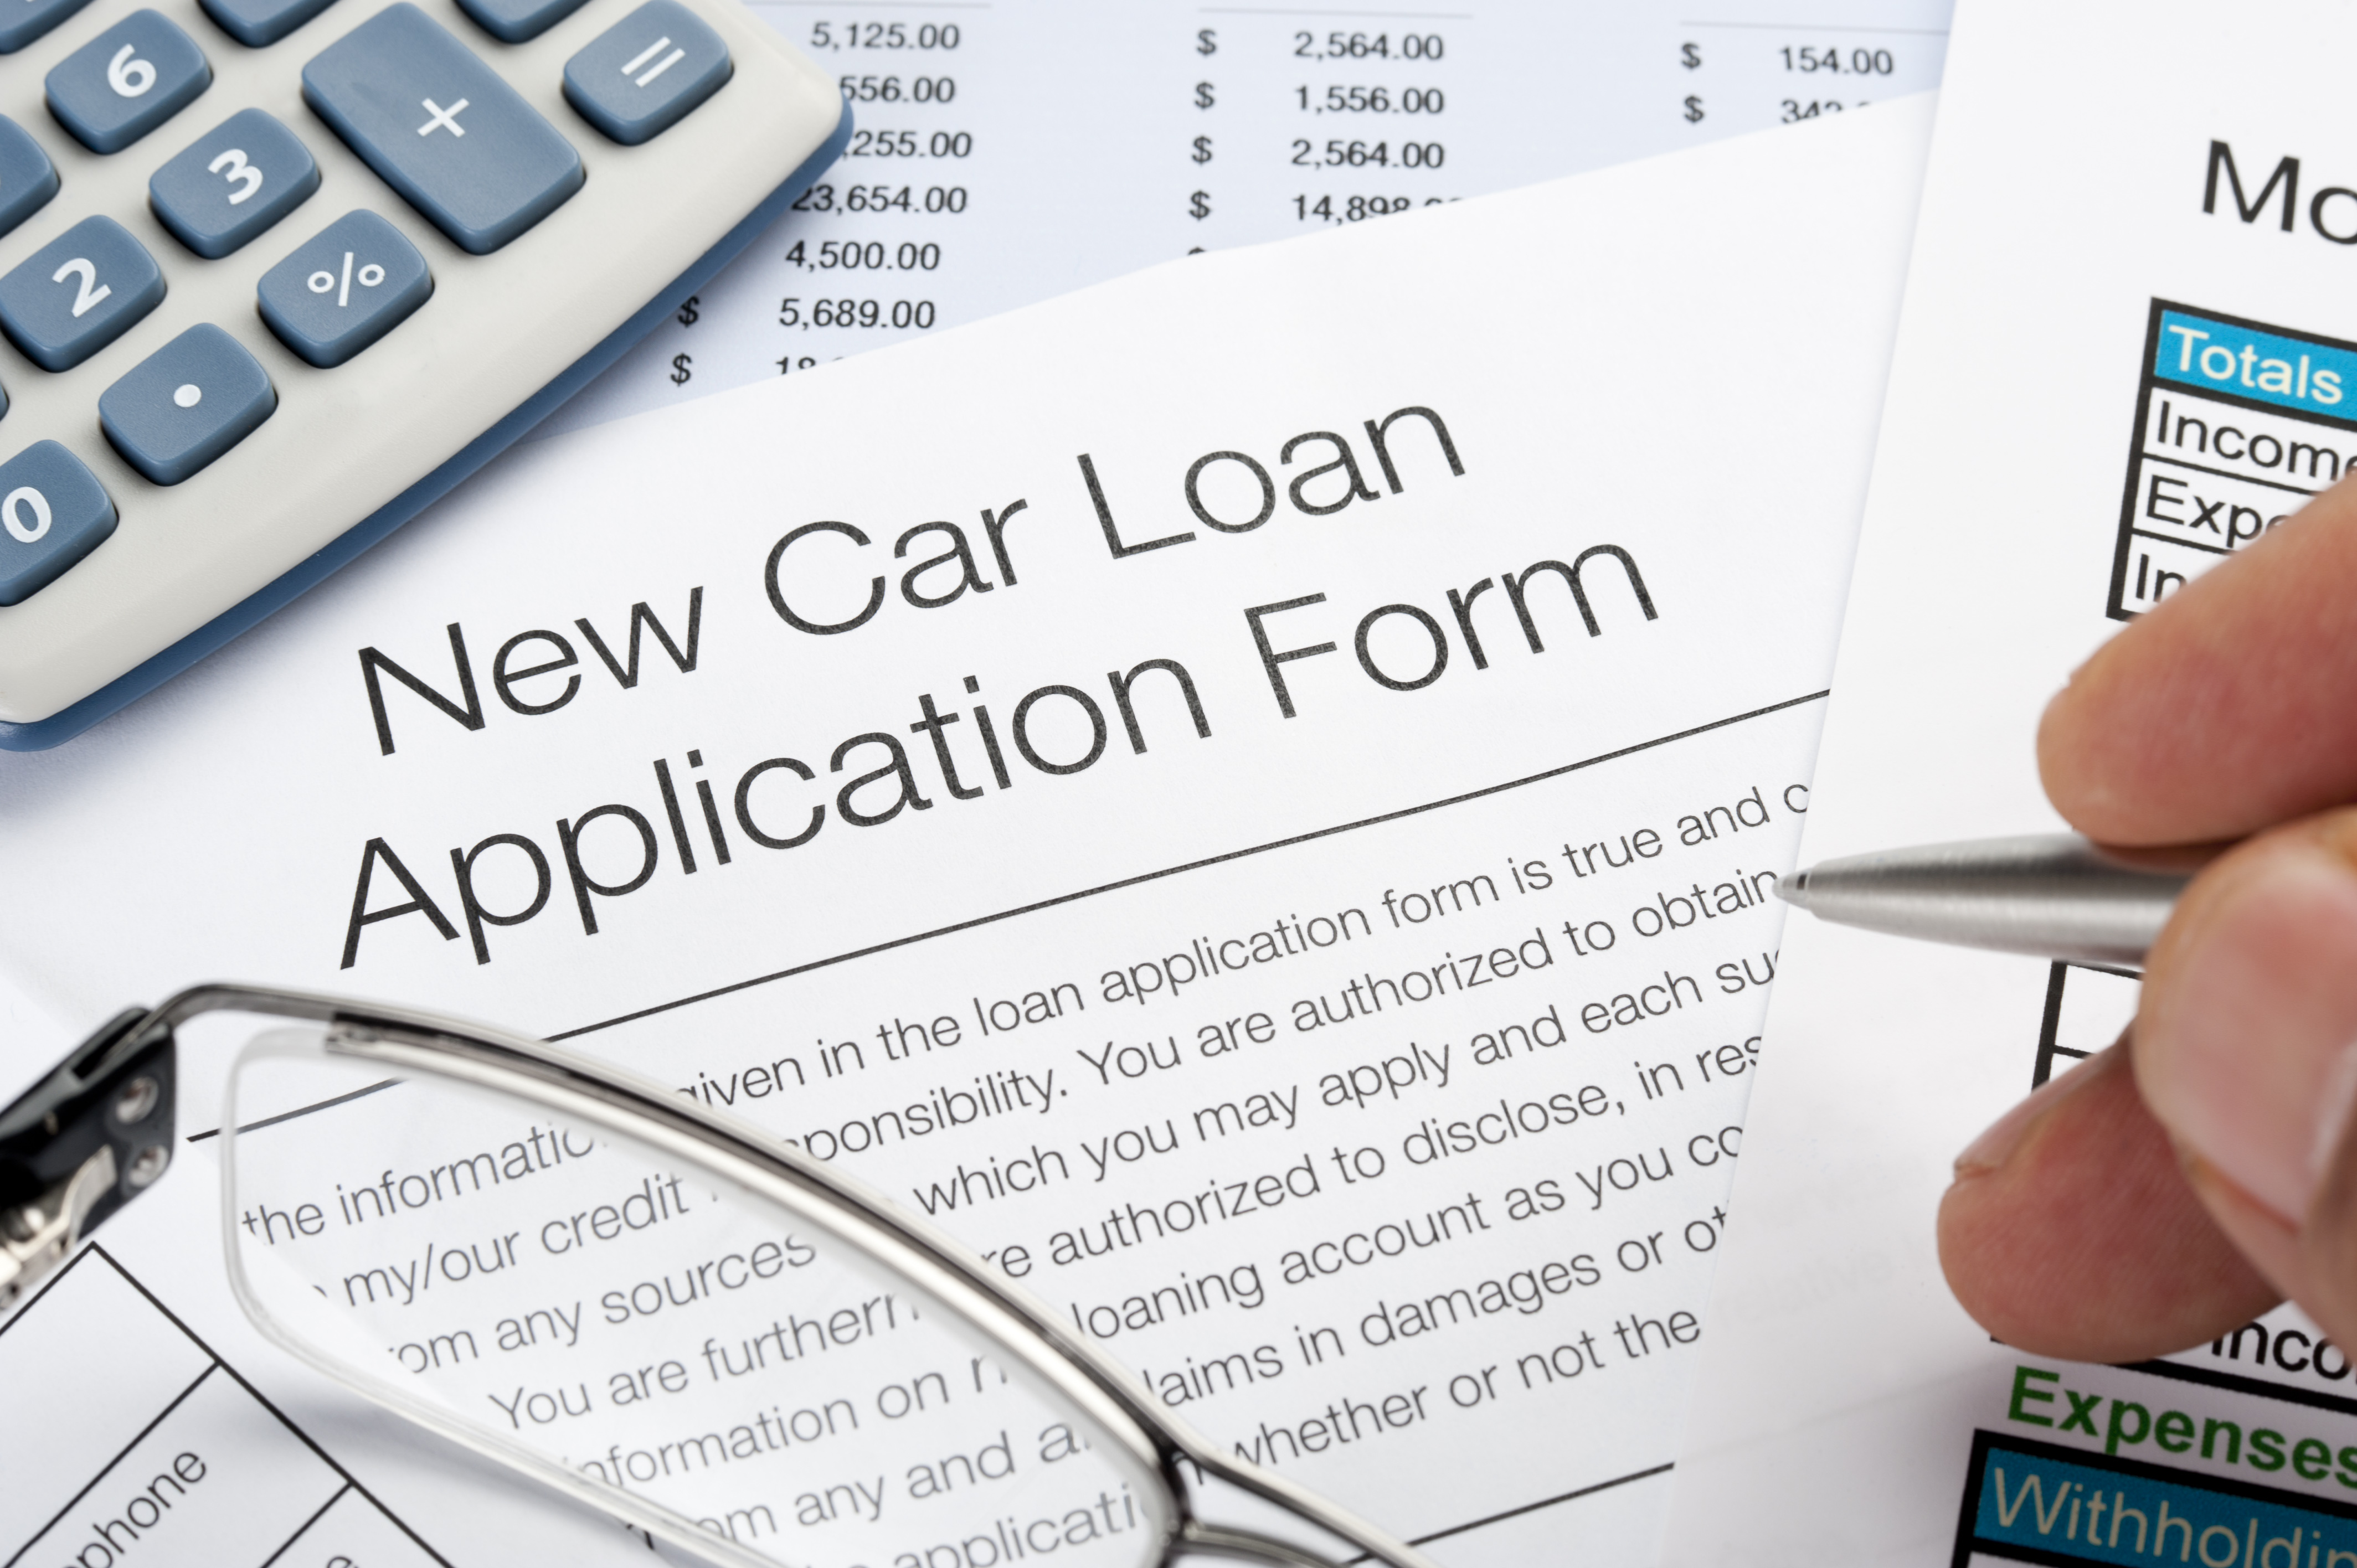 Does Cosigning A Loan To A Car Make You Responsible If The Person Gets In An Accident Gets Sued